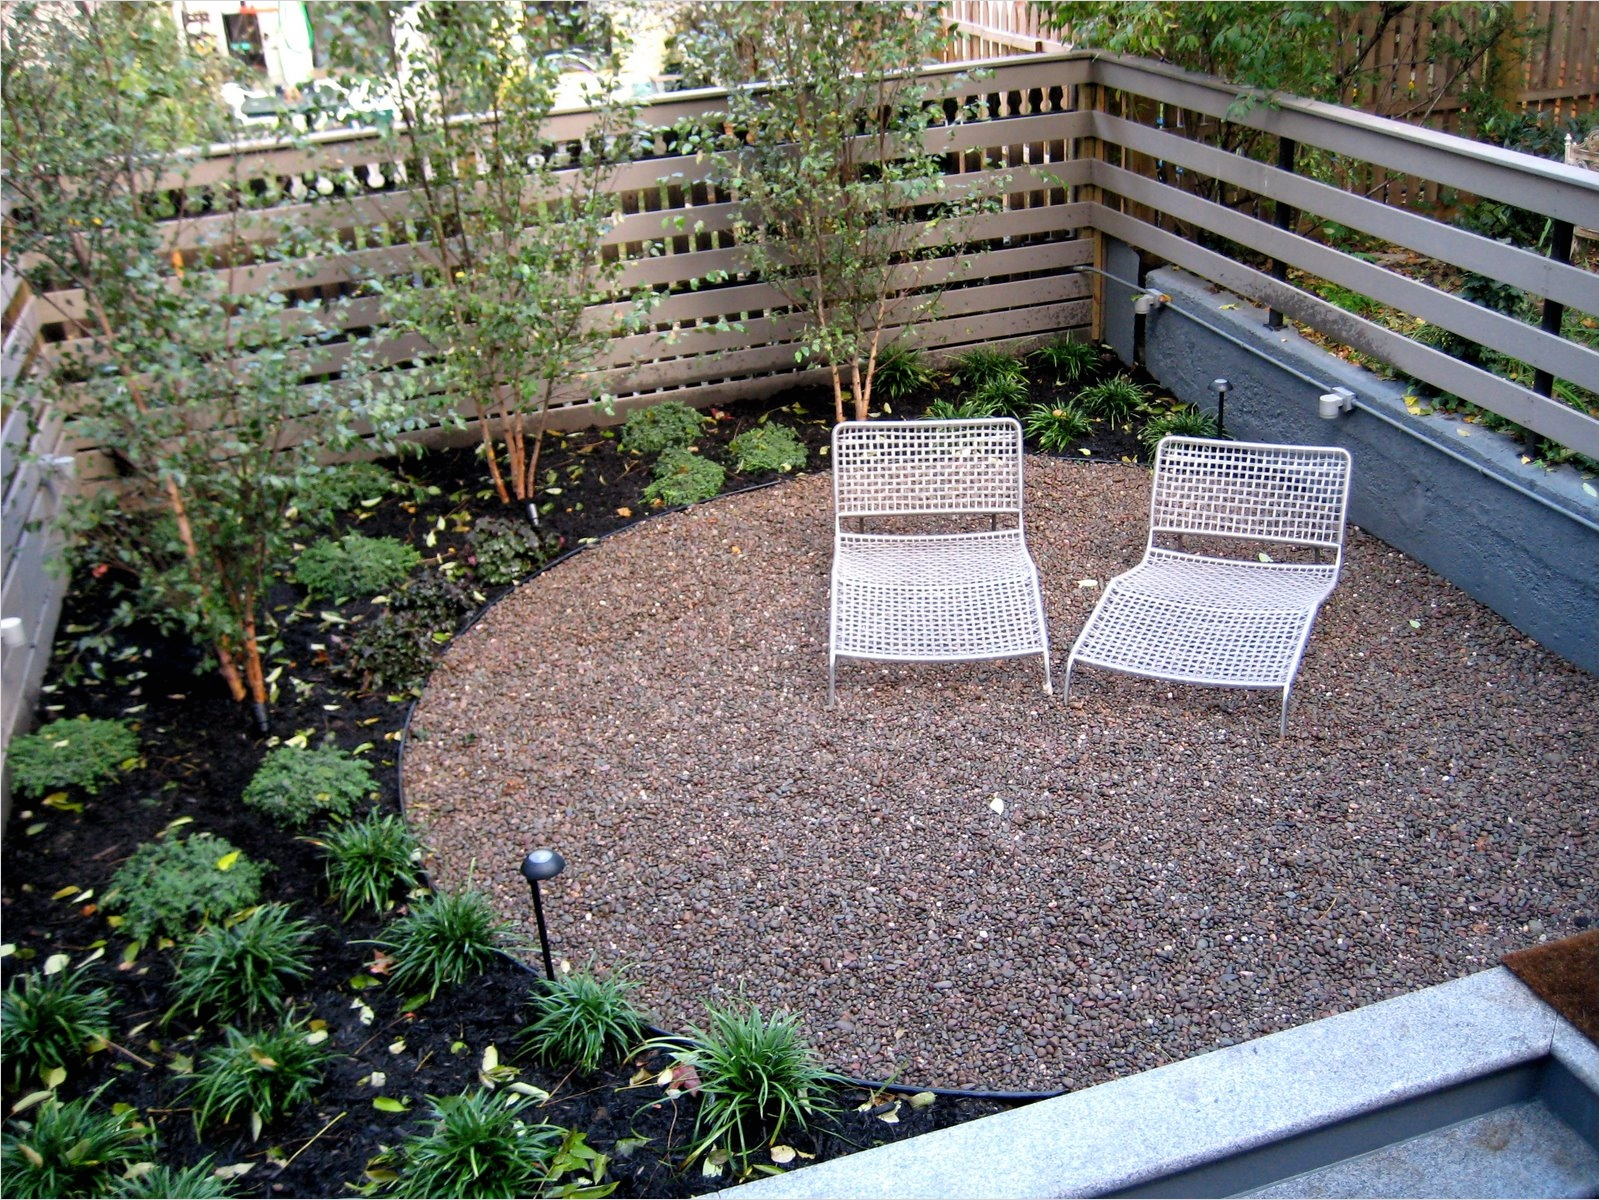 43 Perfect Gravel Landscaping Ideas 45 This Wonderful Backyard Patio Ideas with Gravel Will Relaxing You Landscaping Gardening Ideas 9